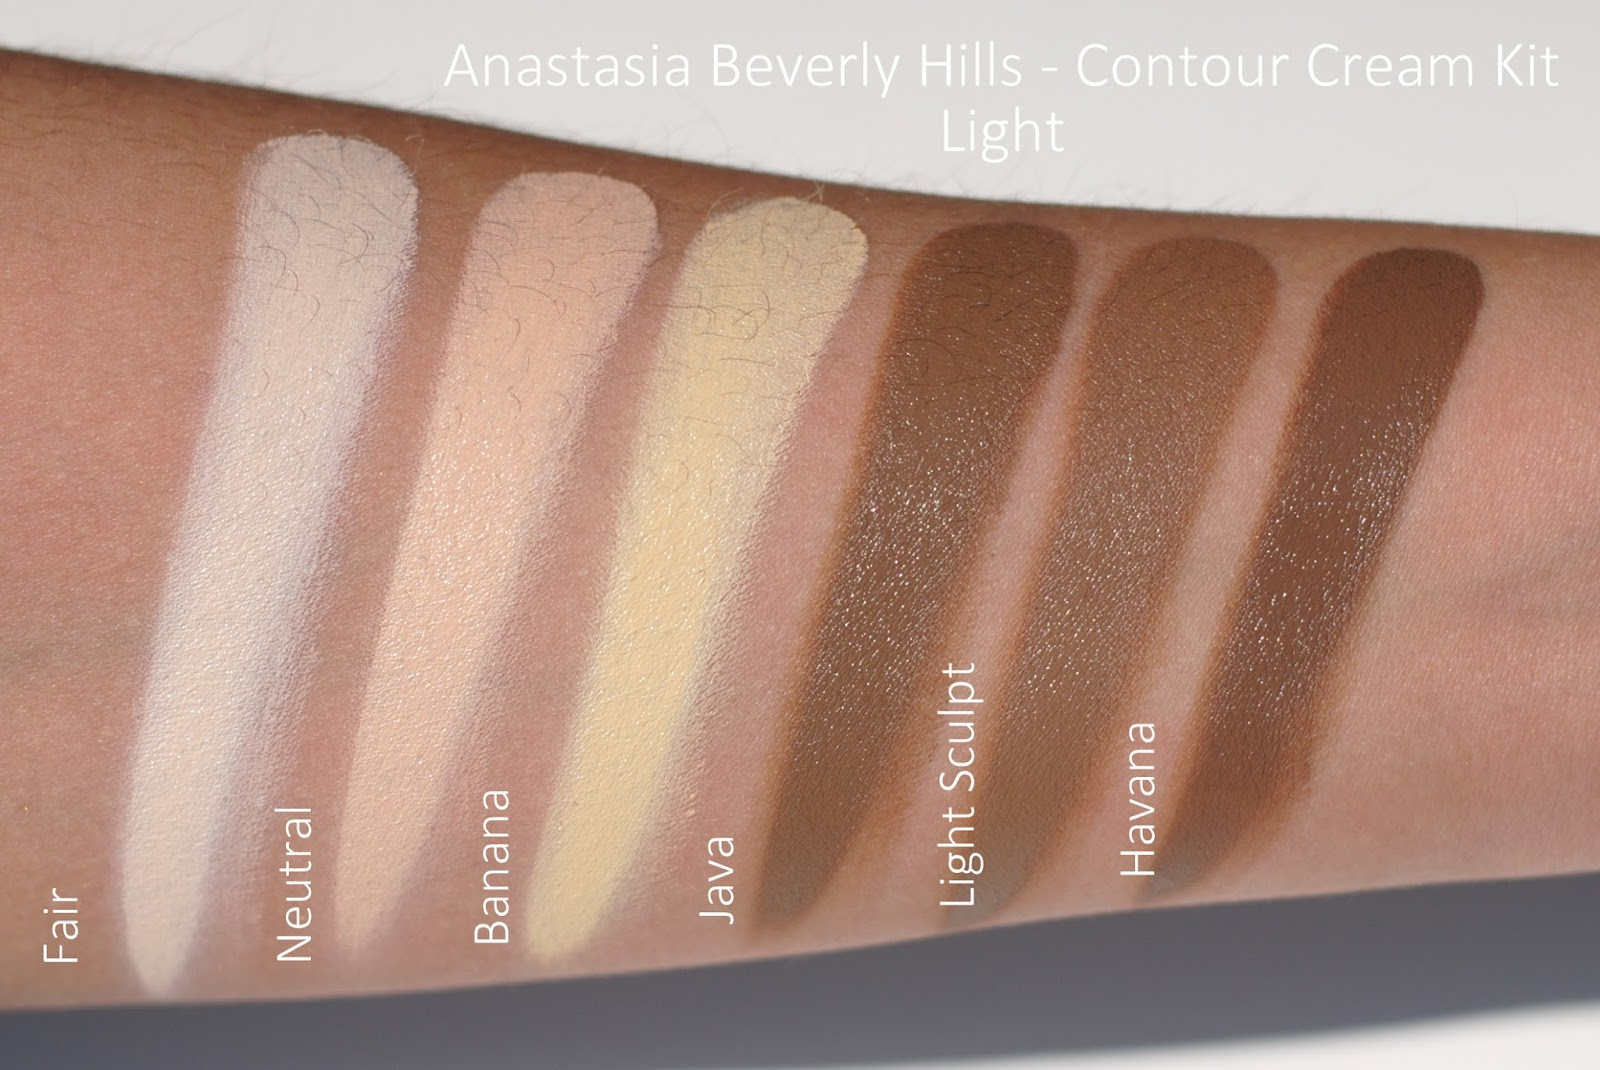 I Am A Fashioneer Abh Cream Contour Kit Comparison